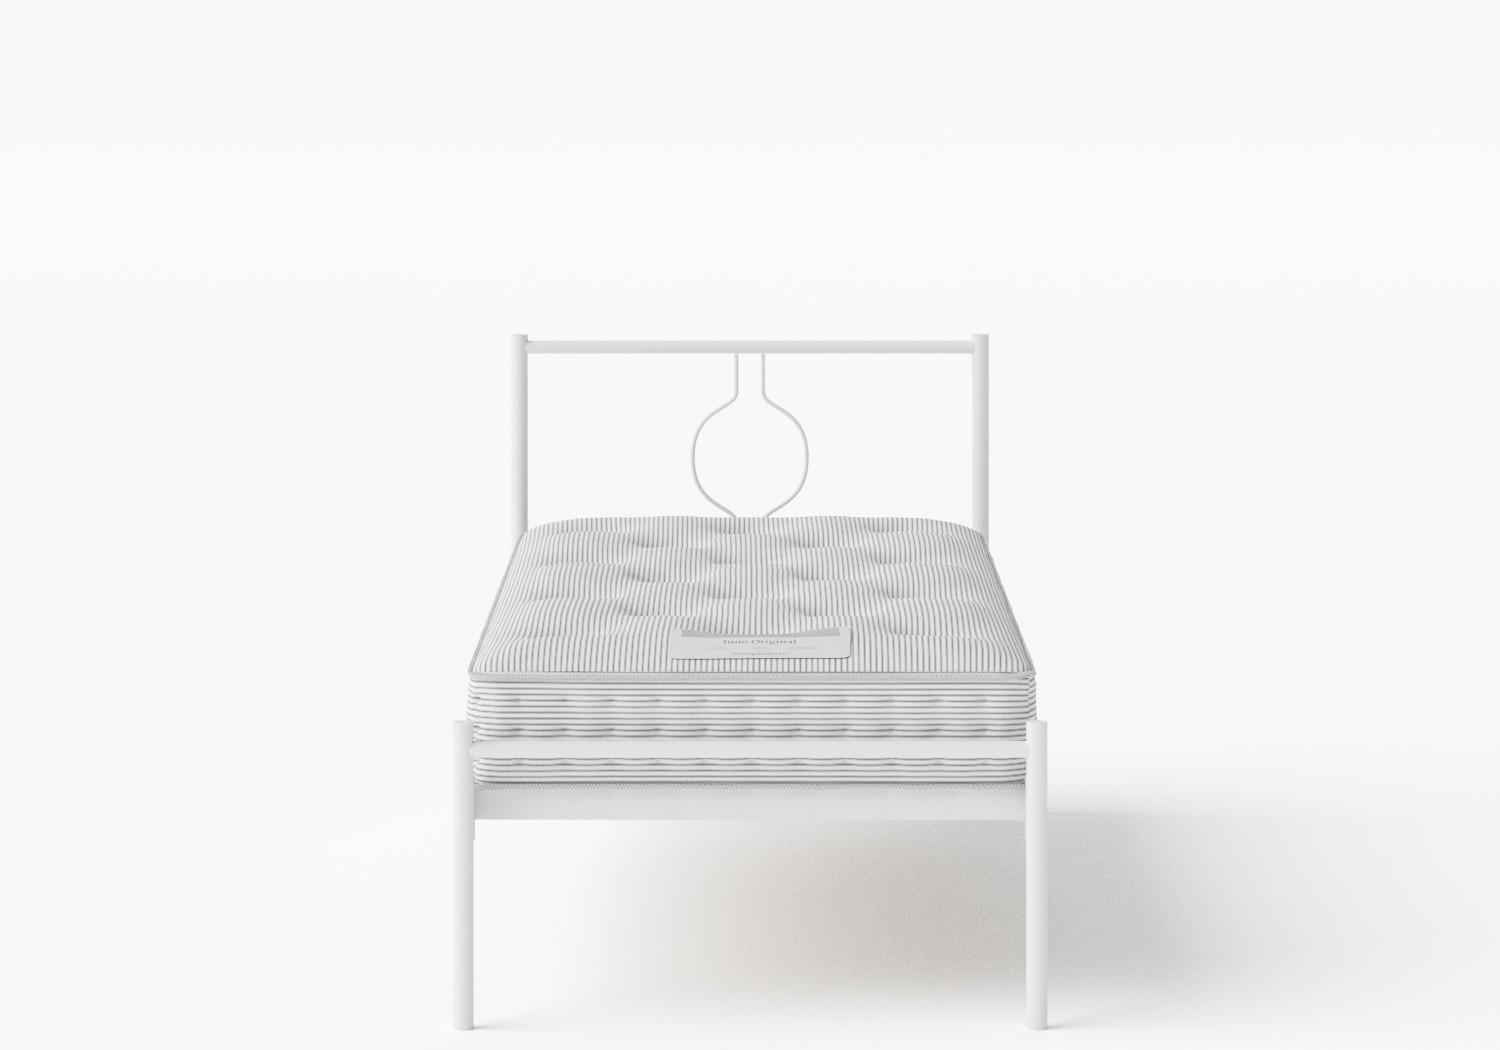 Meiji Single Iron/Metal Bed in Satin White shown with Juno 1 mattress